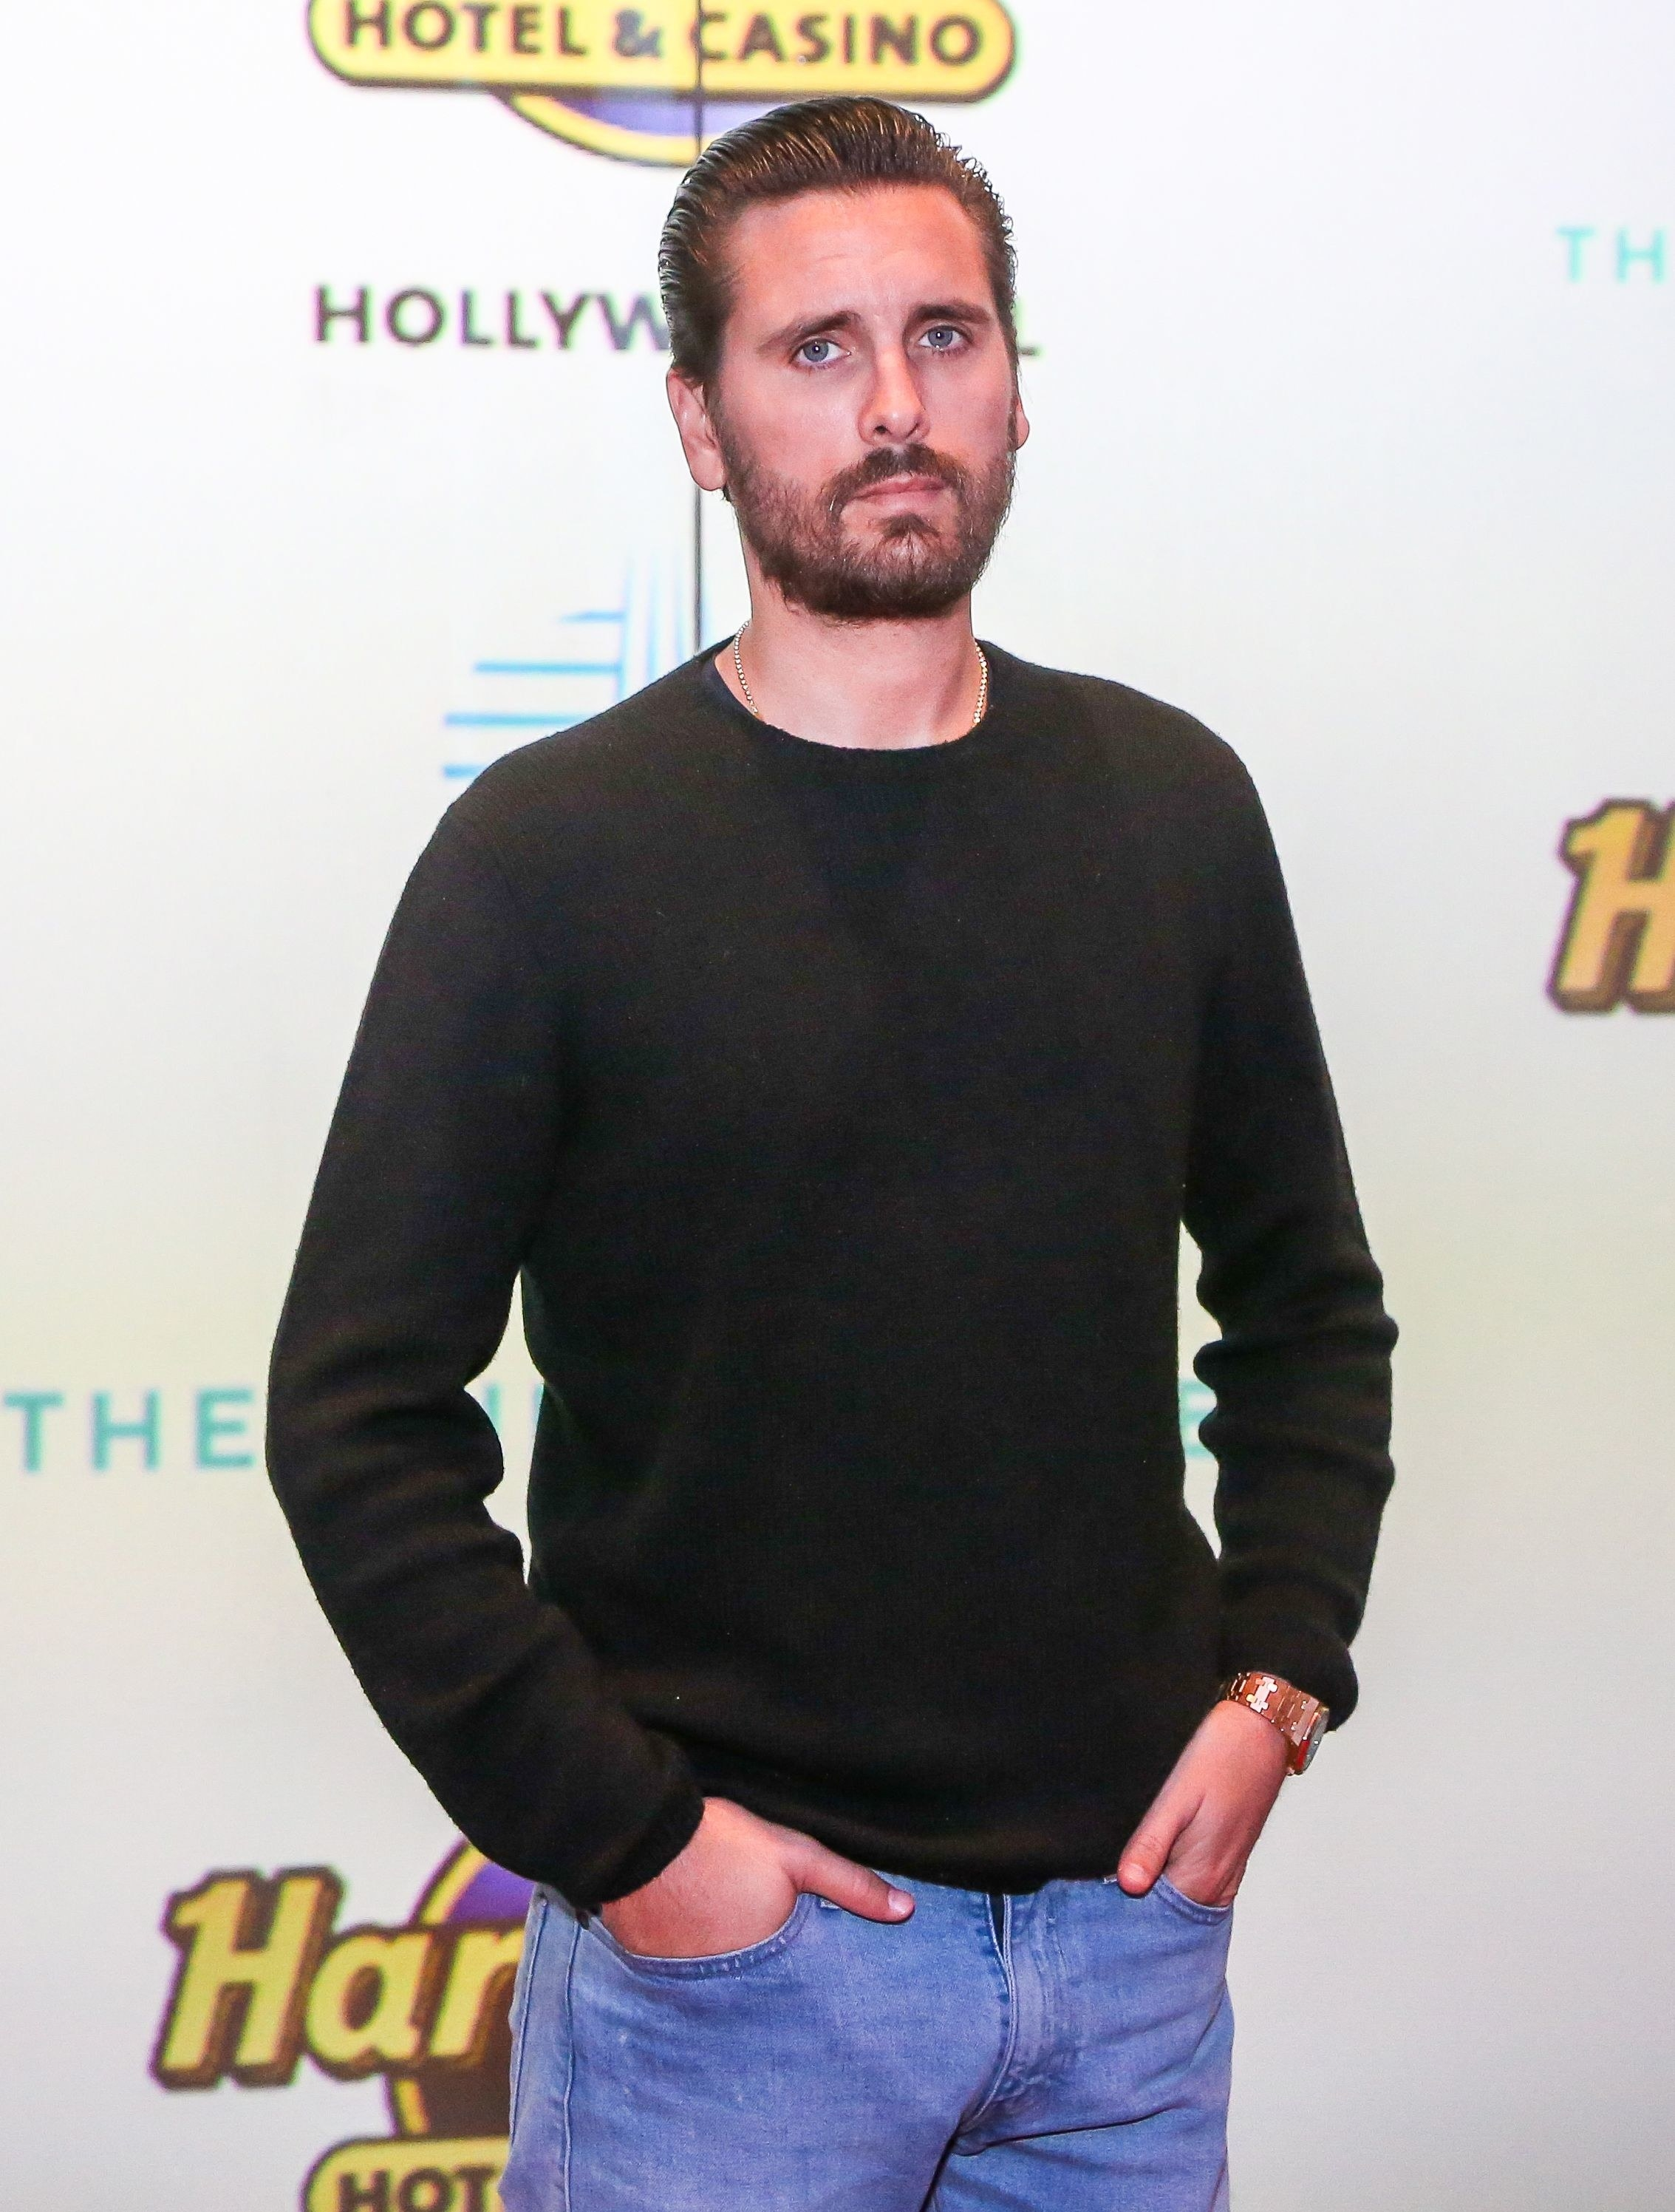 US media personality Scott Disick attends the Grand Opening of the Guitar Hotel expansion at Seminole Hard Rock Hotel & Casino Hollywood, in Hollywood, Florida, October 24, 2019